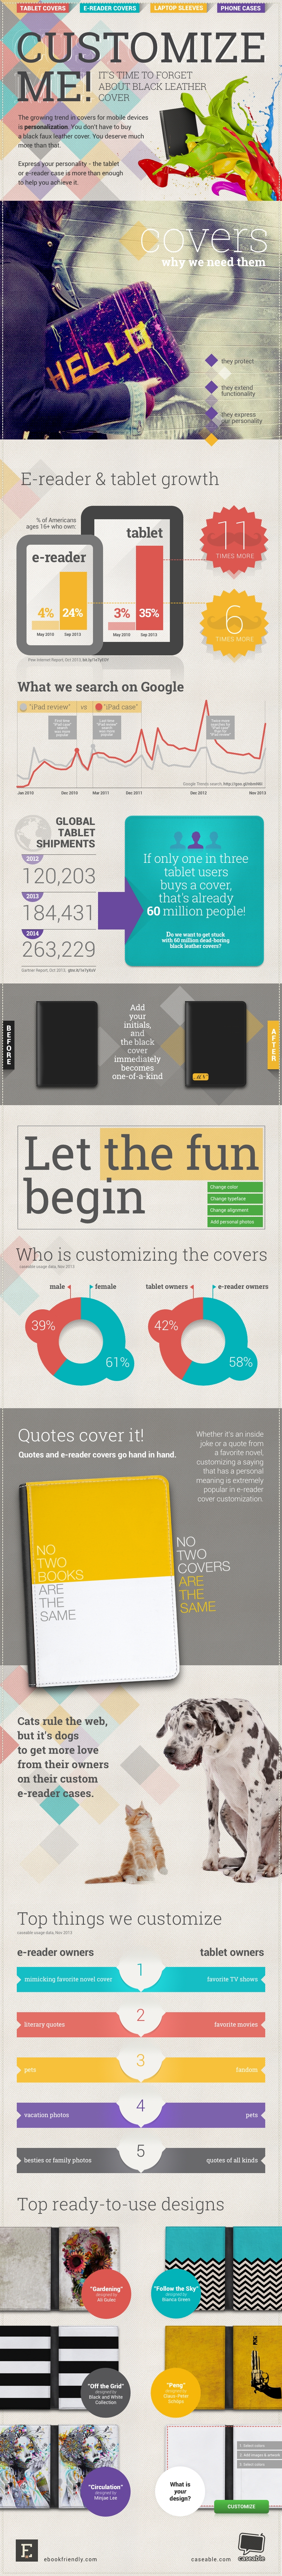 Who is customizing tablet and e-reader covers (infographic) | Ebook Friendly